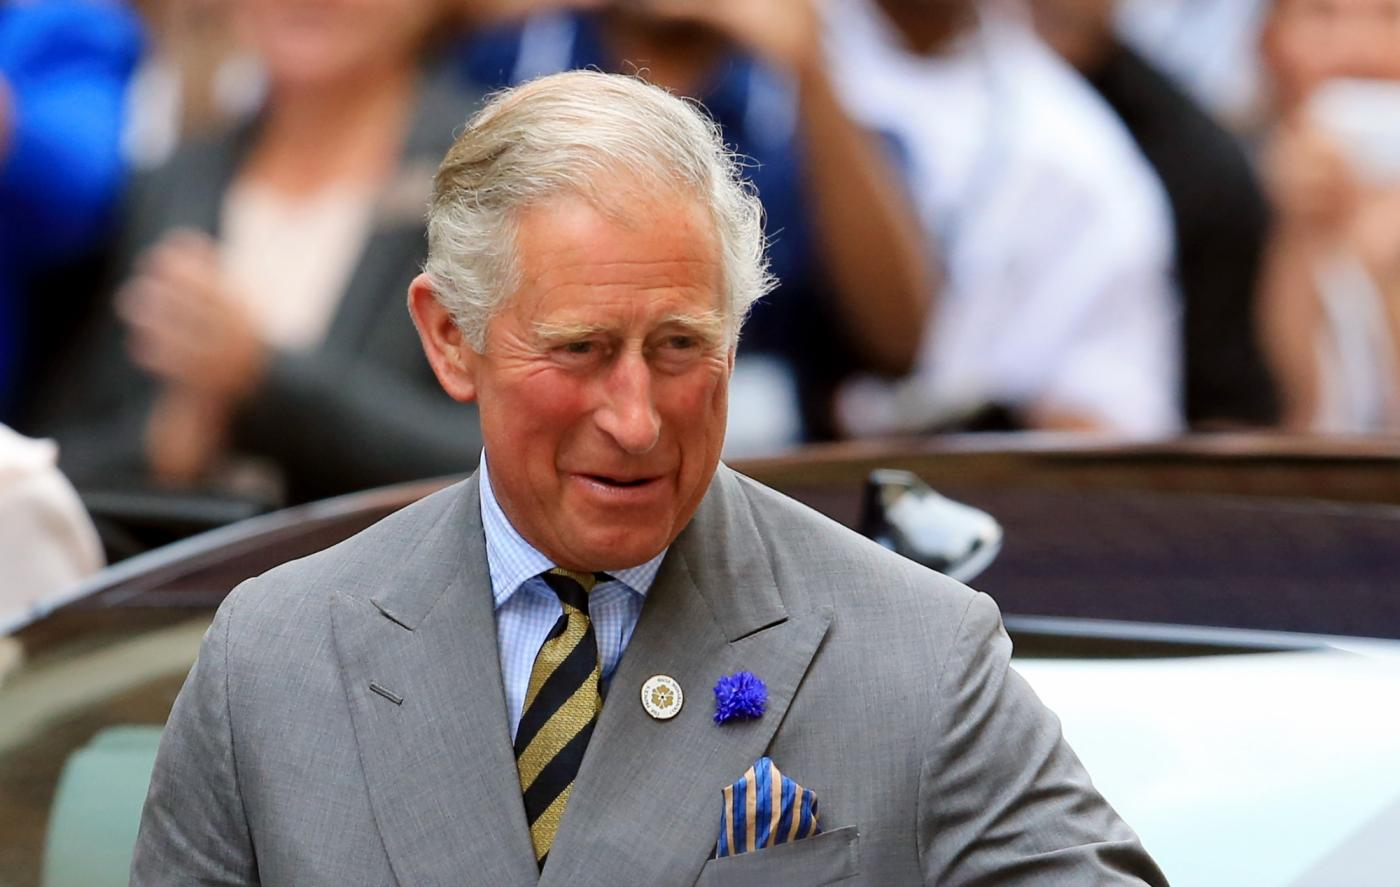 Prince Charles of Wales. (File Photo: IANS) by .